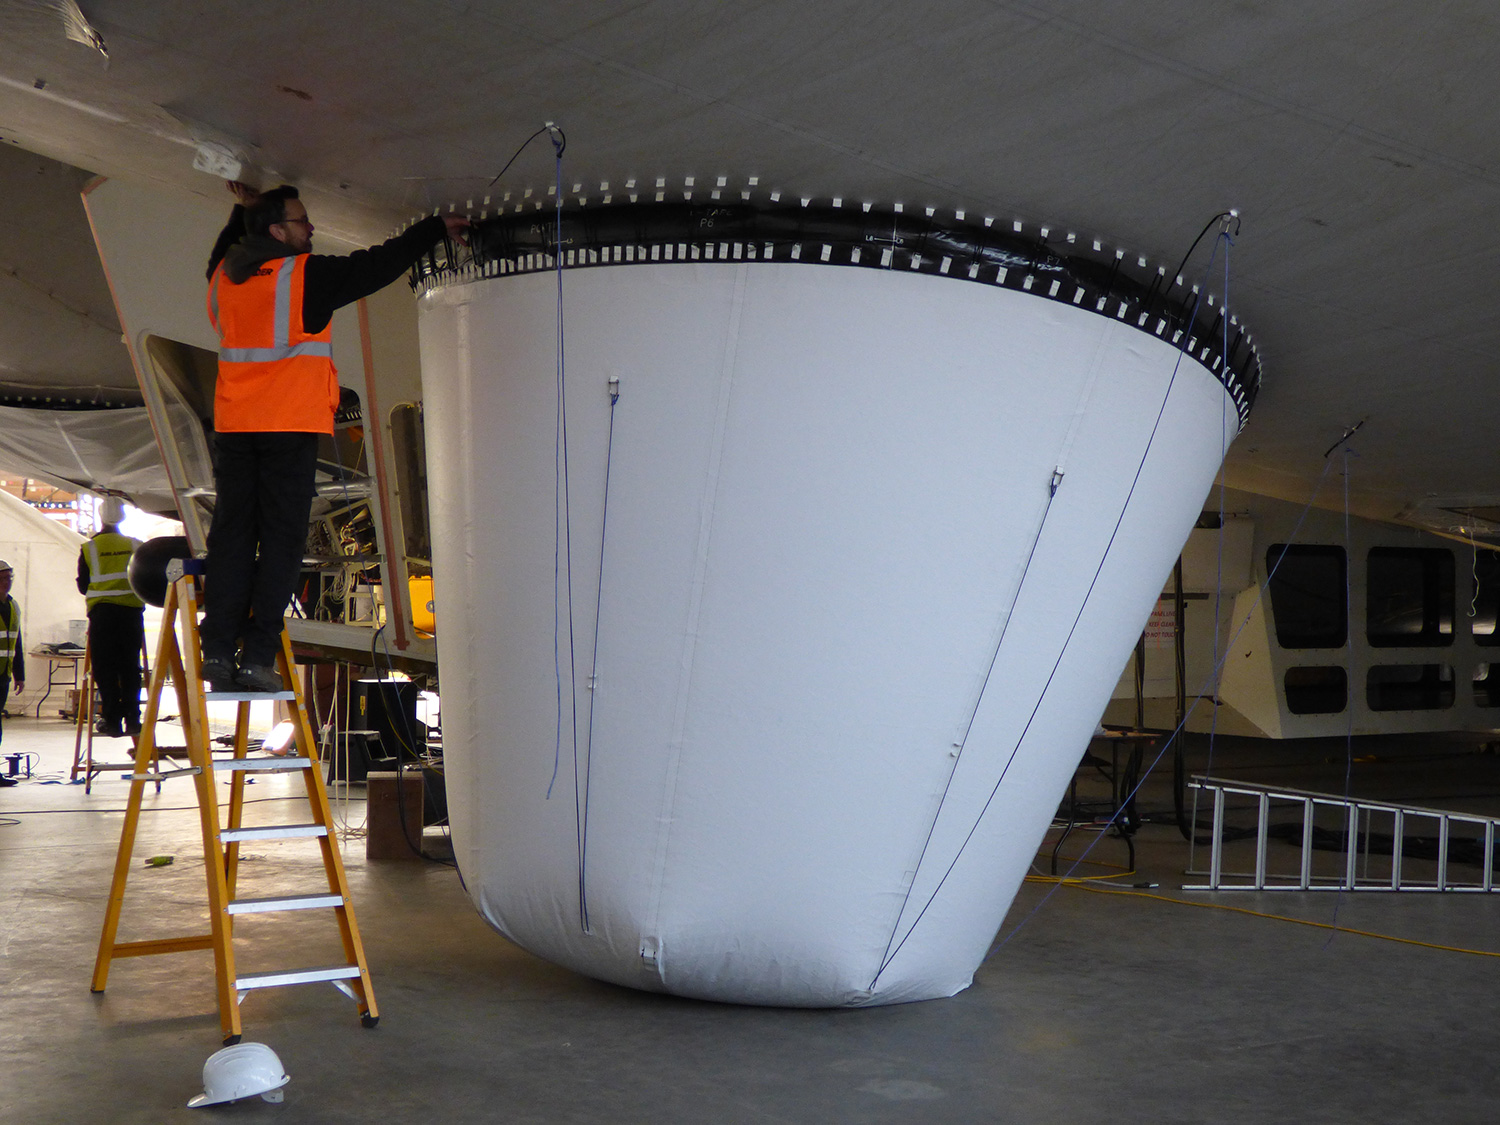 One of Airlander 10's new airbags.